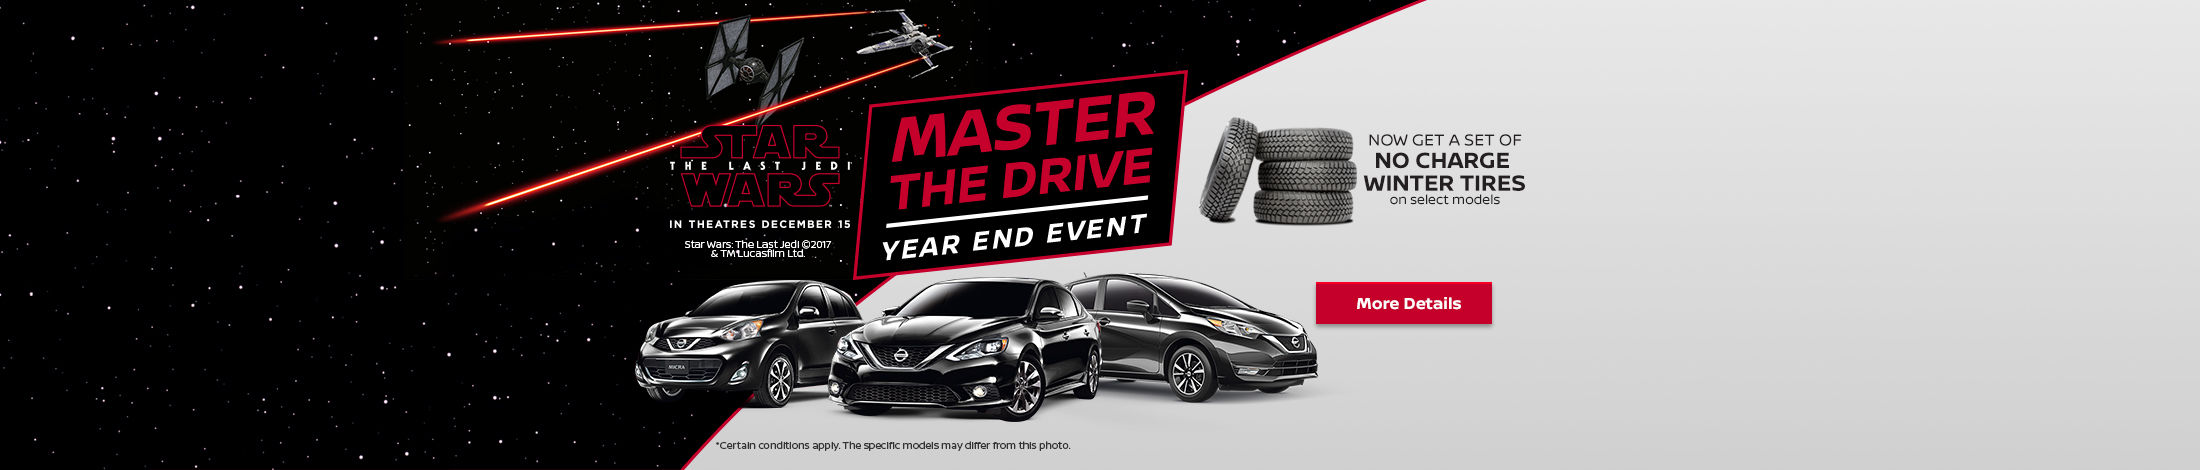 Master the Drive Year End Event - web